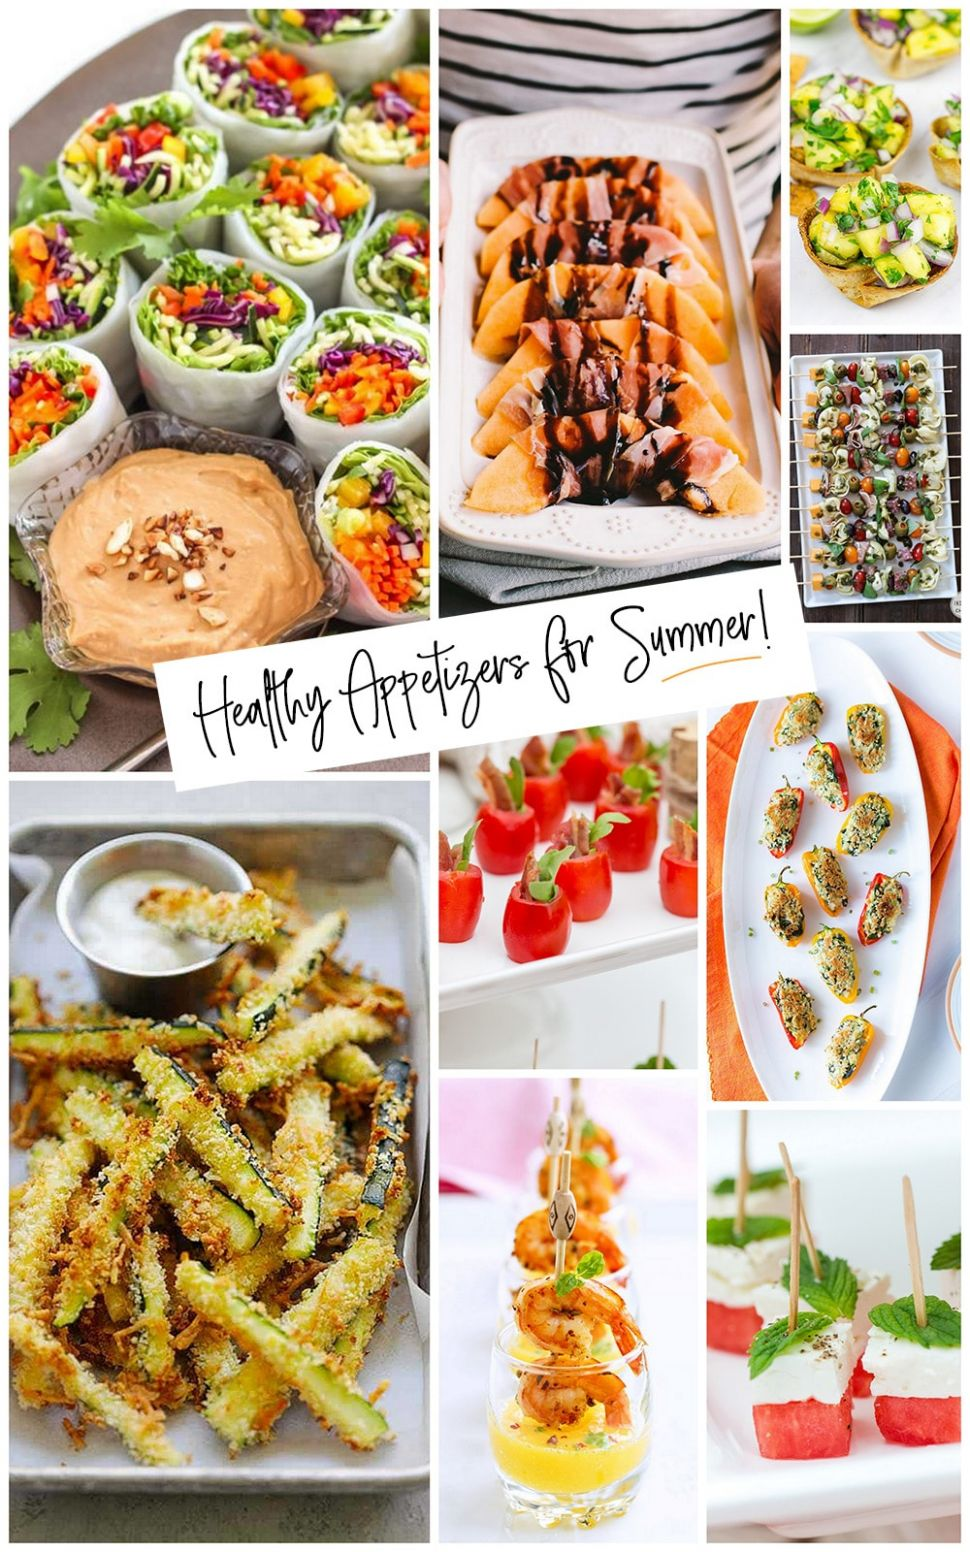 Healthy Summer Appetizers Easy & Delish - Pizzazzerie - Summer Recipes Delish